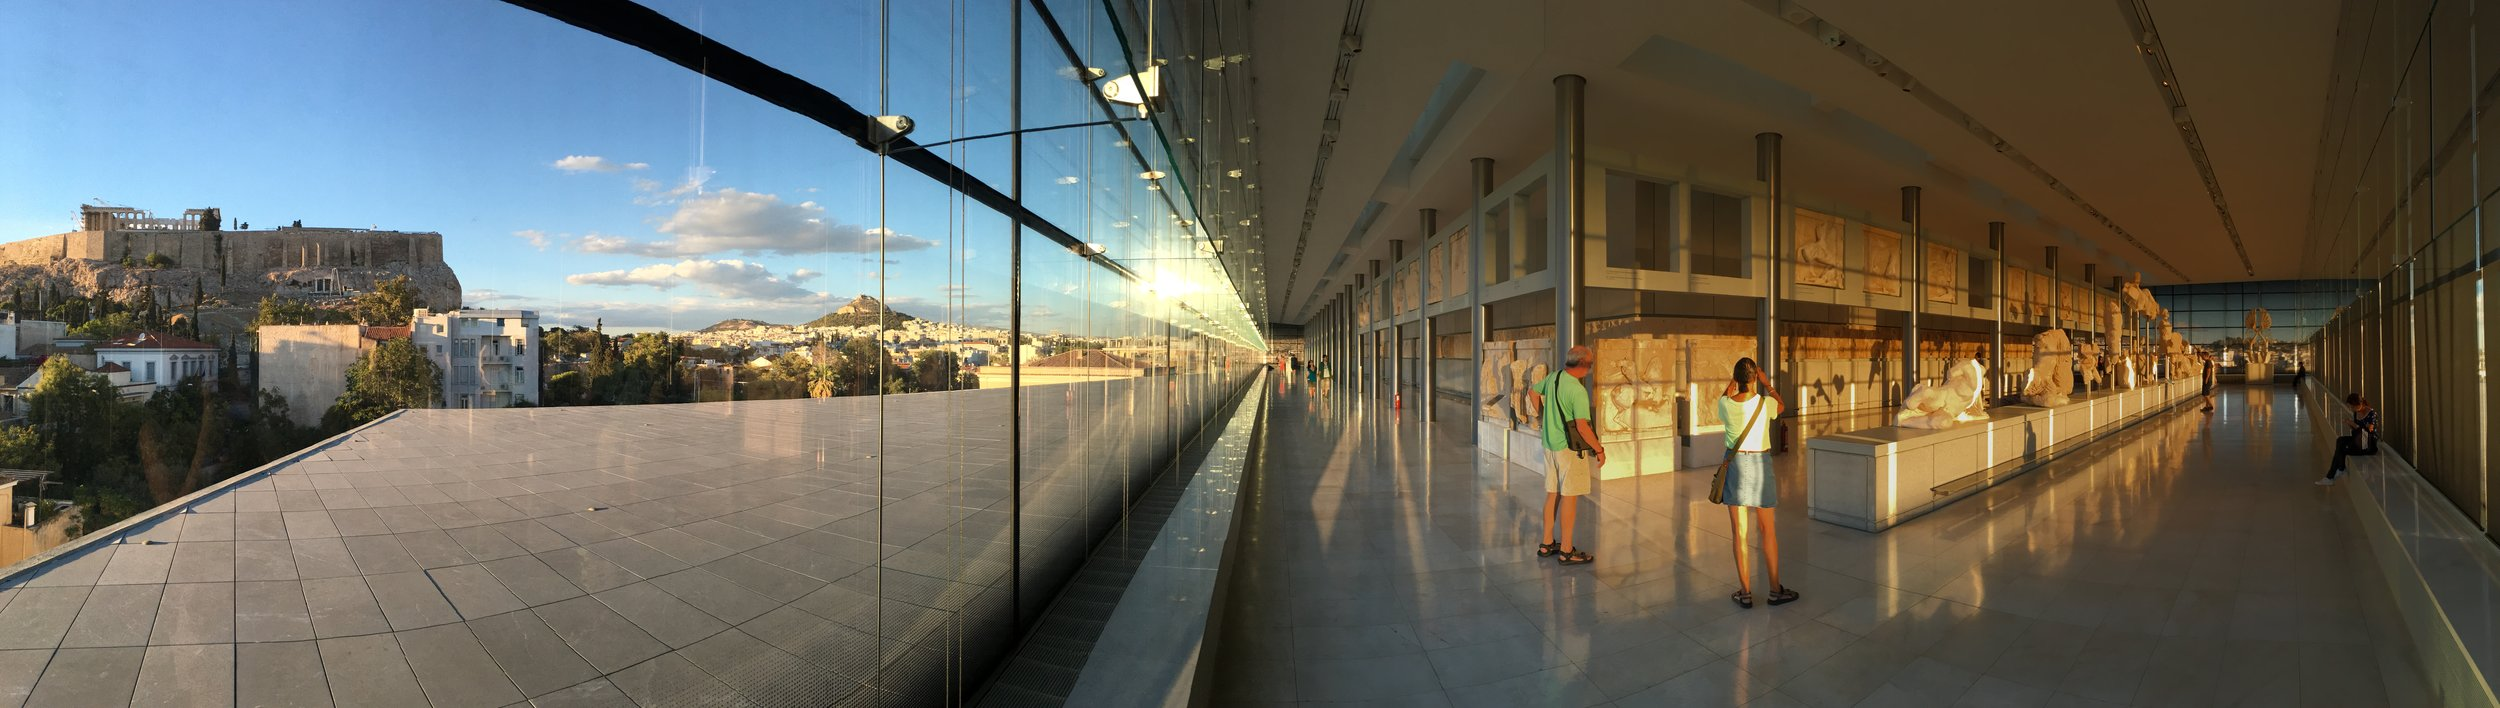 The Acropolis Museum, Athens, Greece  (note the Parthenon, visible in the upper left!)